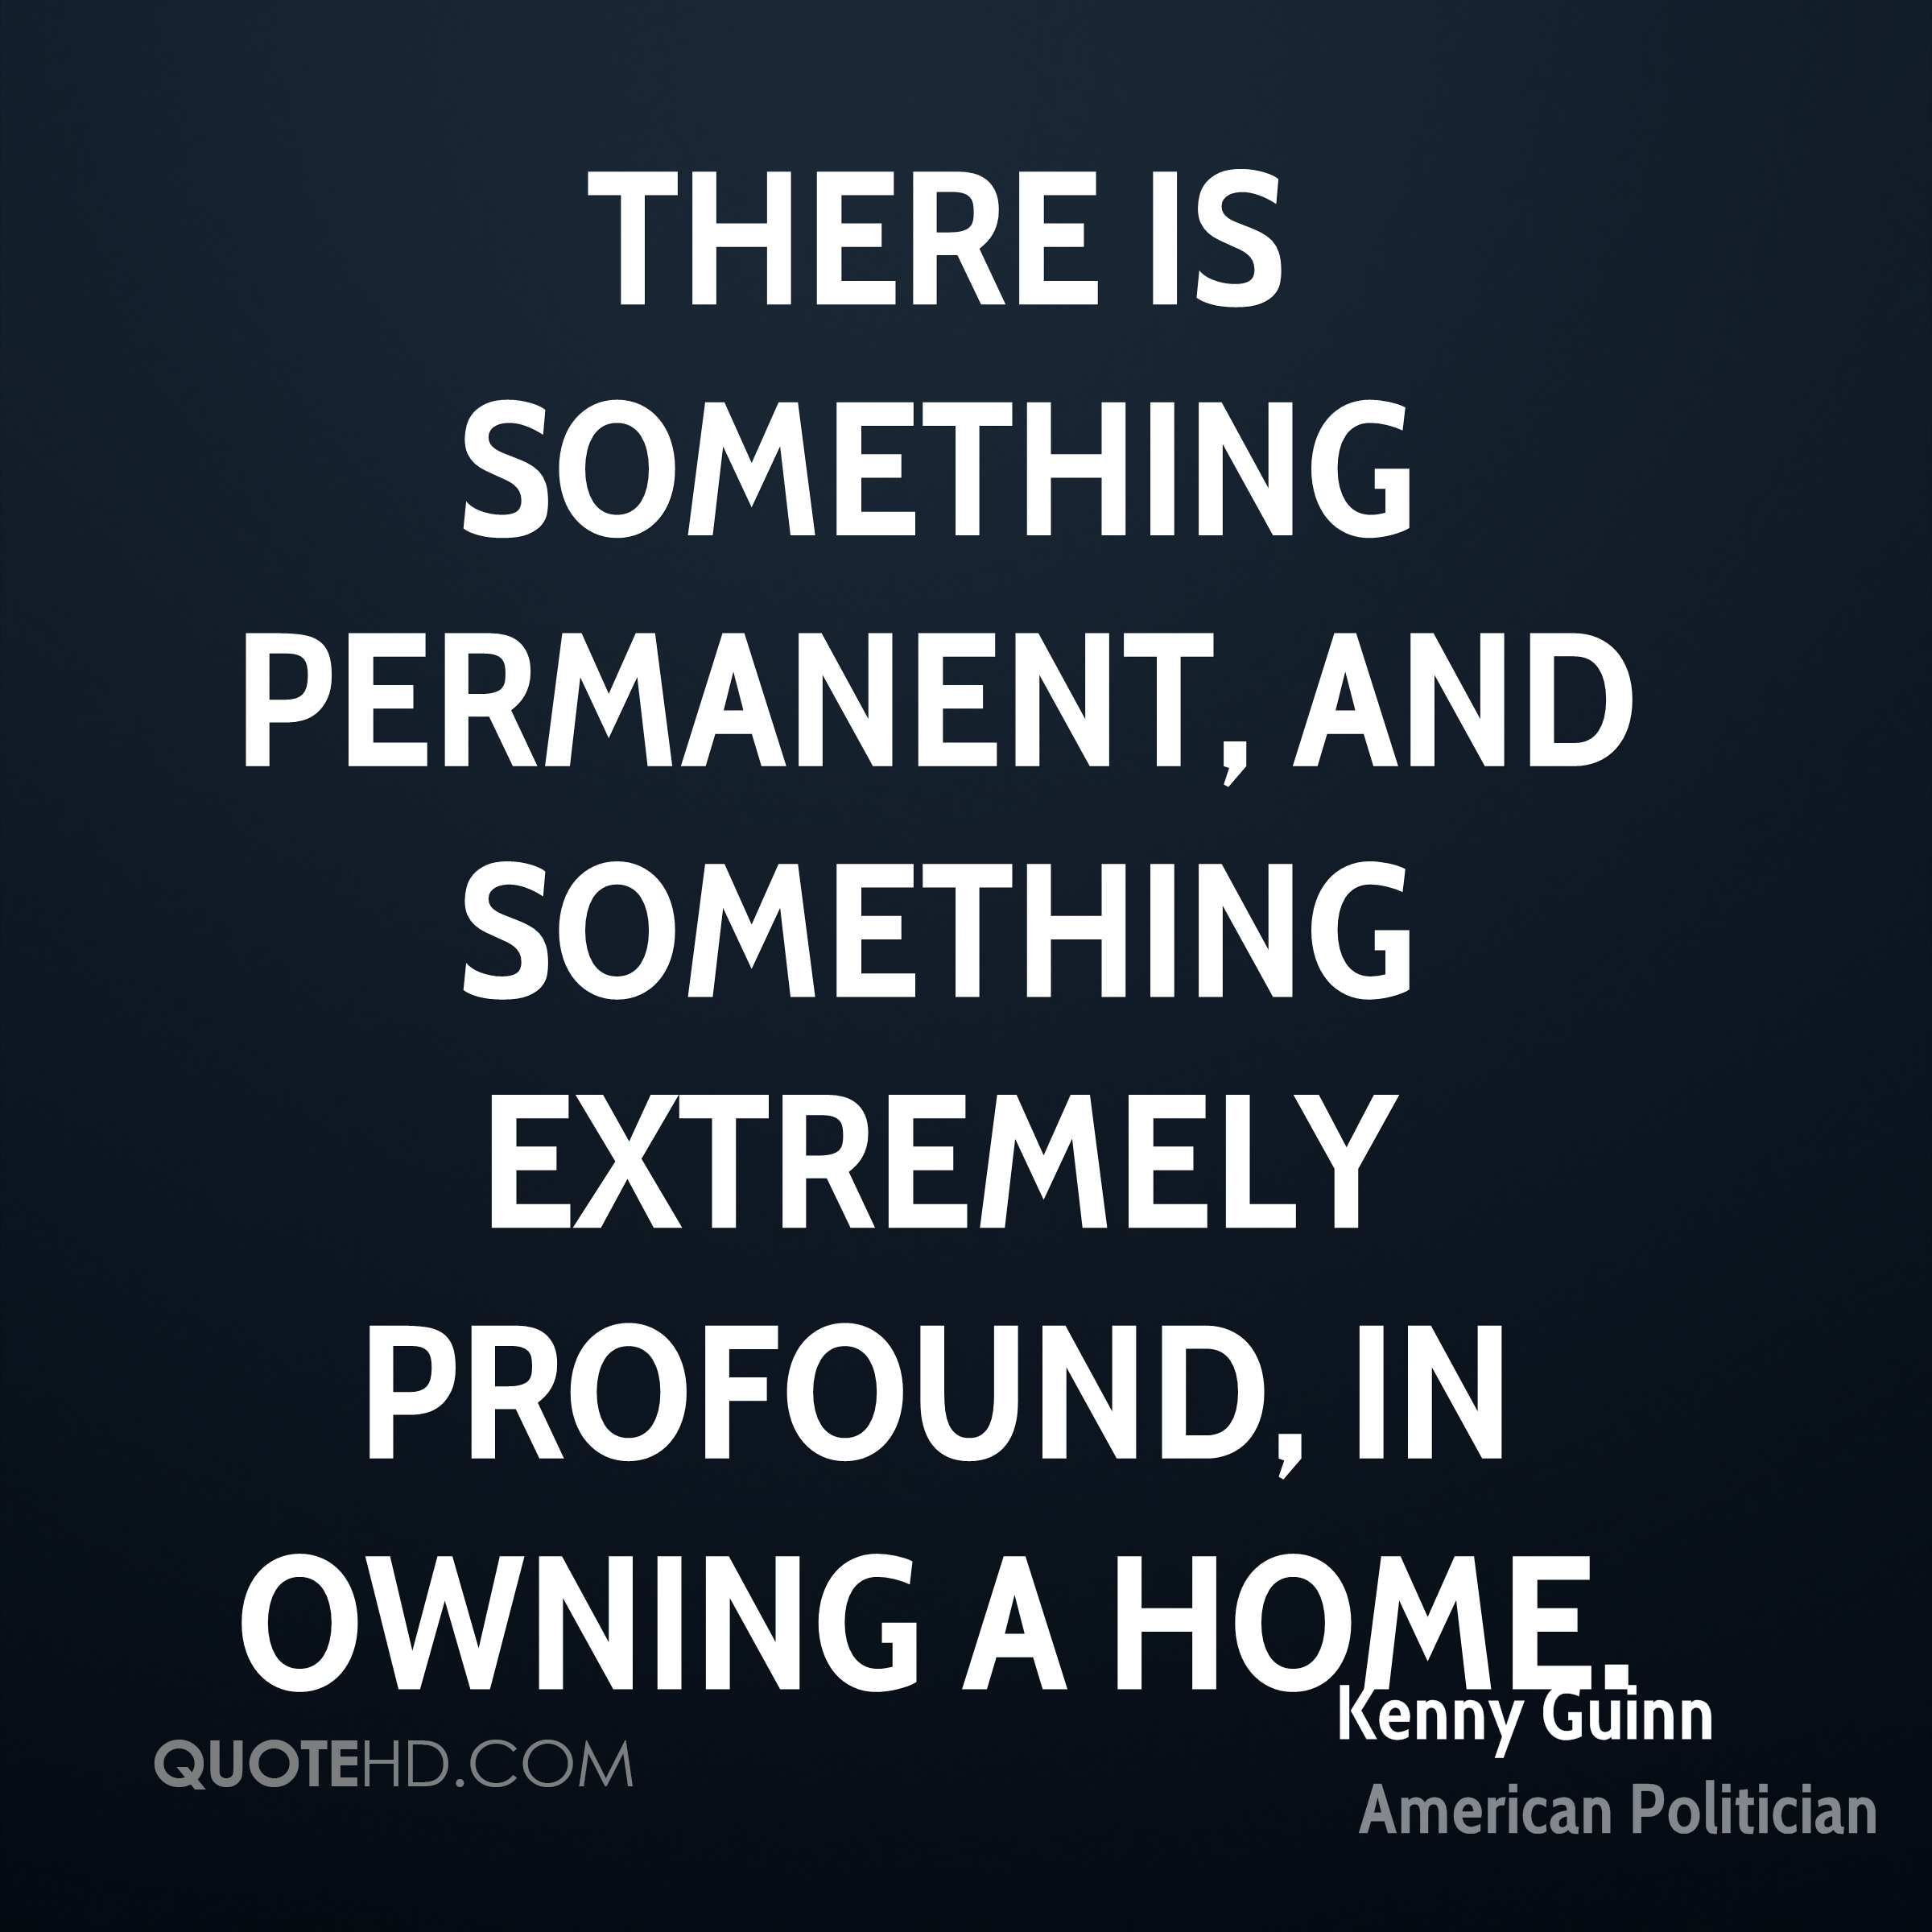 There is something permanent, and something extremely profound, in owning a home.